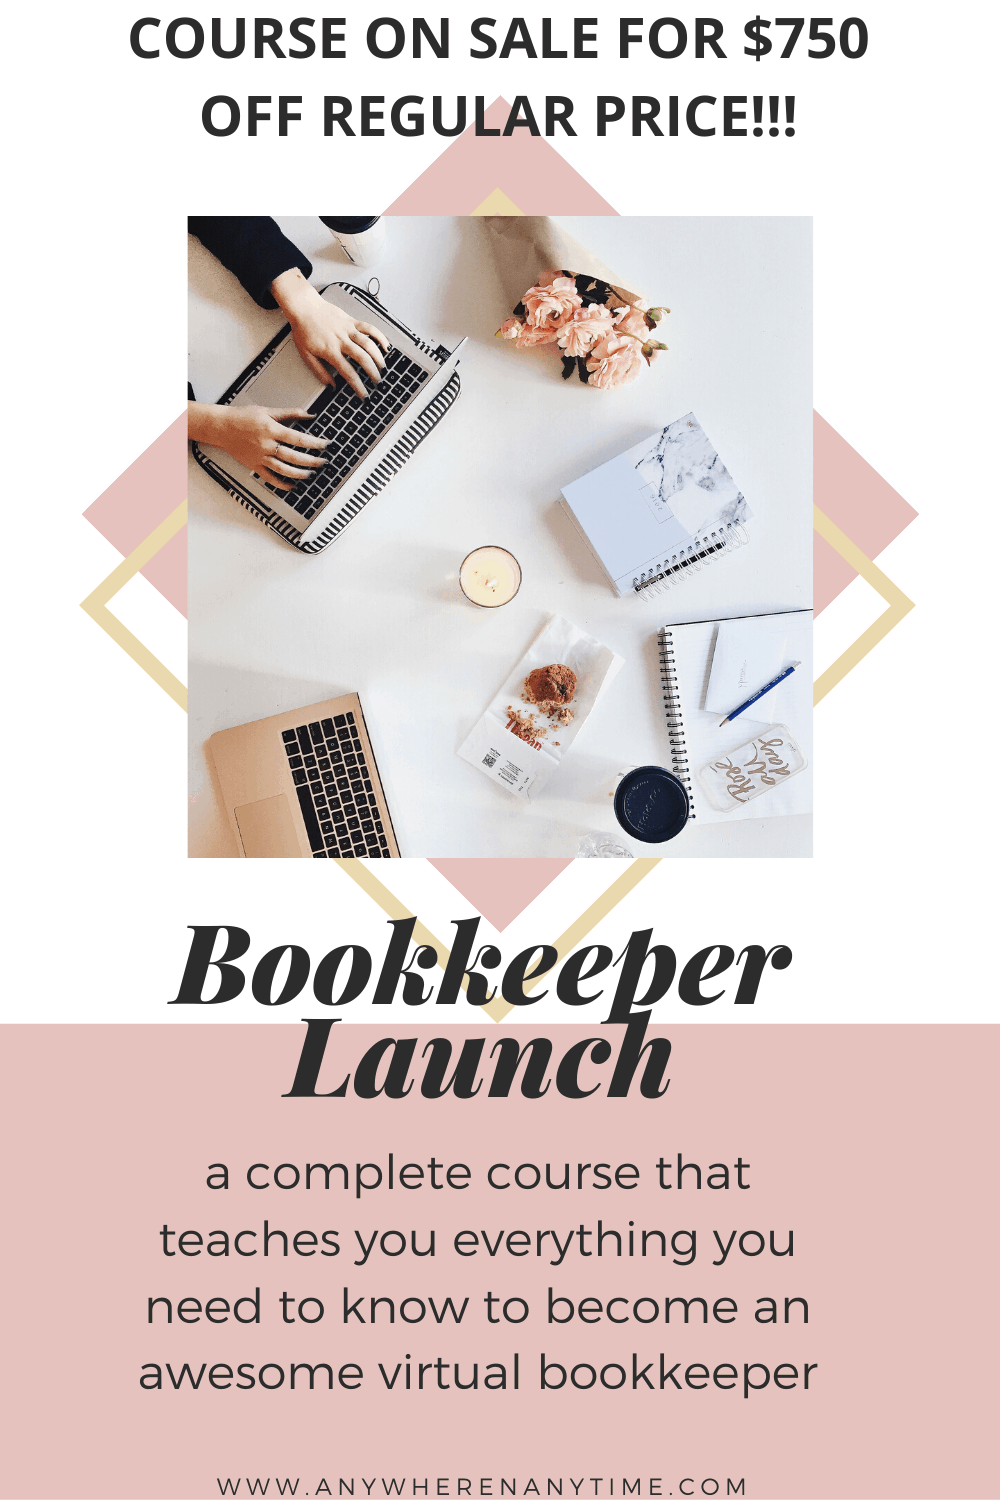 Bookkeeper Launch: Special Deal now through May 1st!